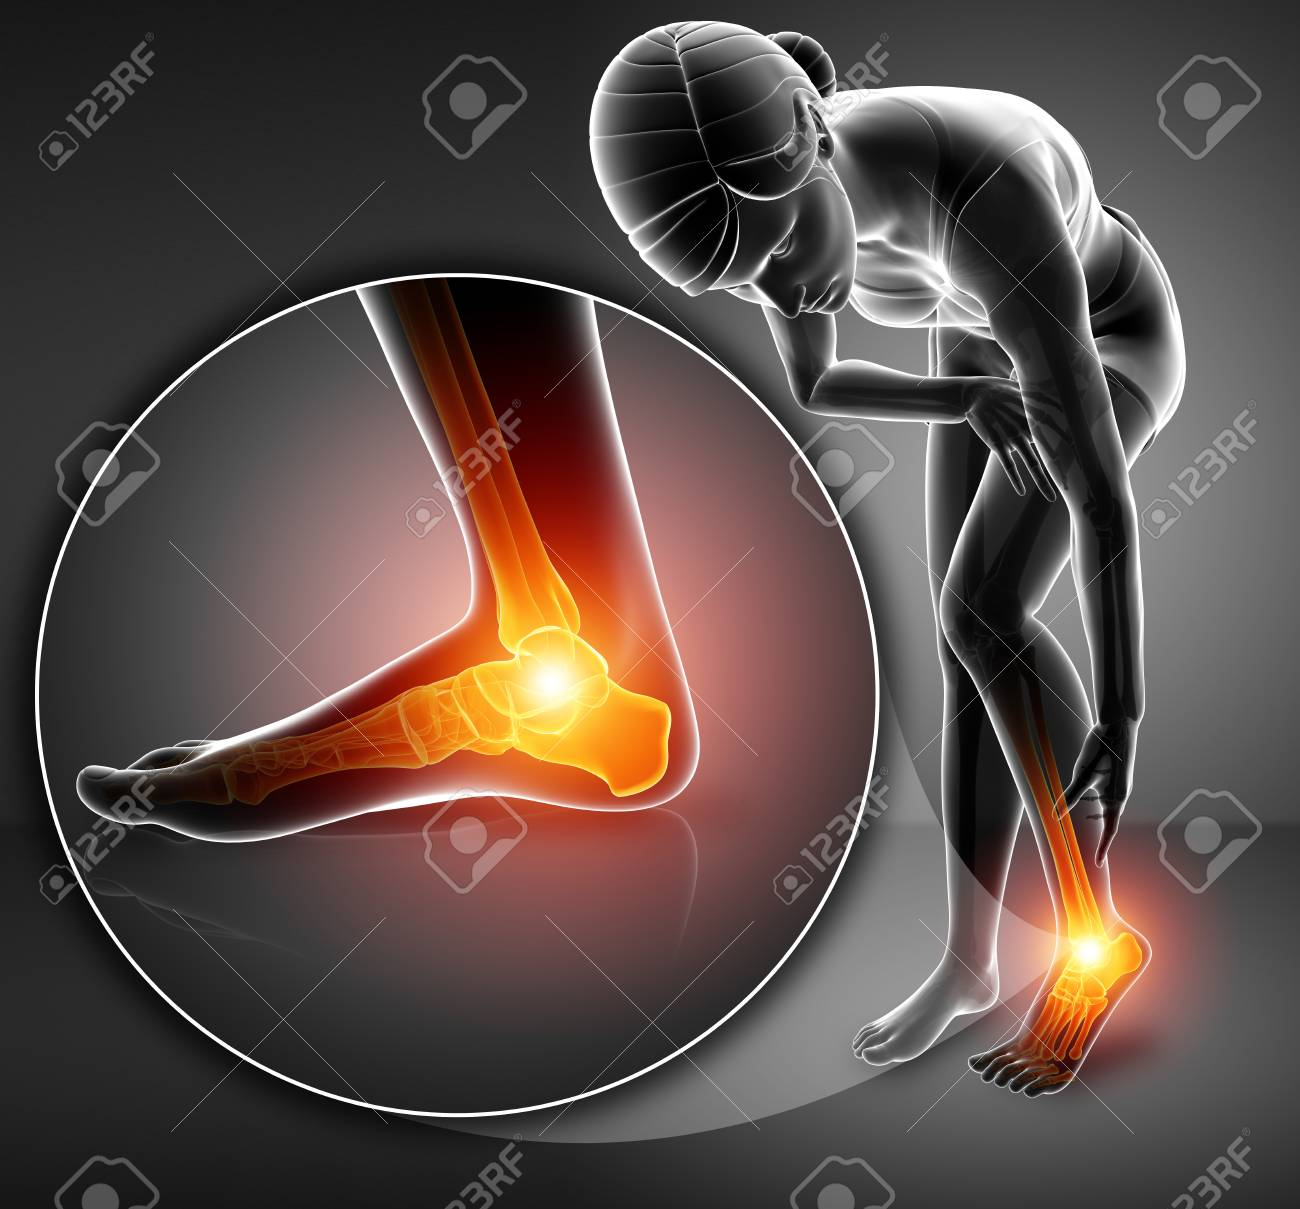 hight resolution of 3d illustration of female foot with ankle pain stock illustration 73769832